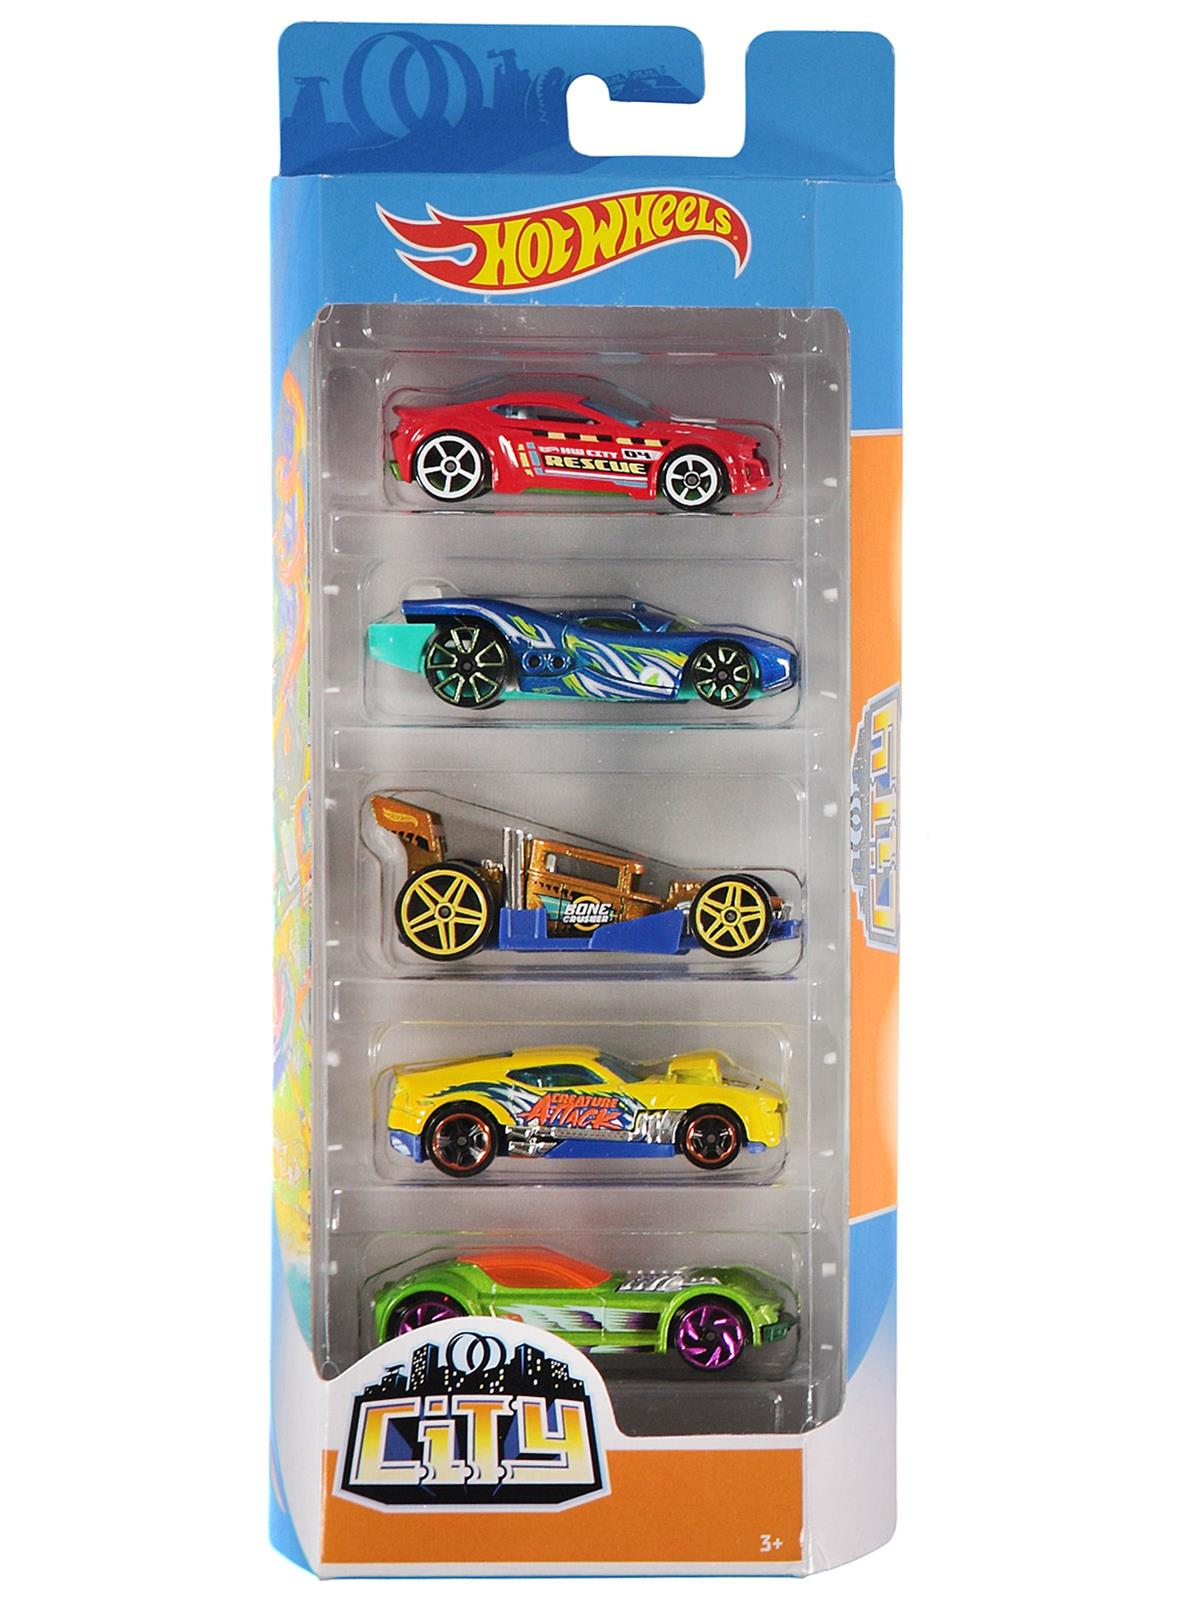 Mtl 1806 Std 2 Hot Wheels 5 Li Araba Seti 3 Yas Mavi